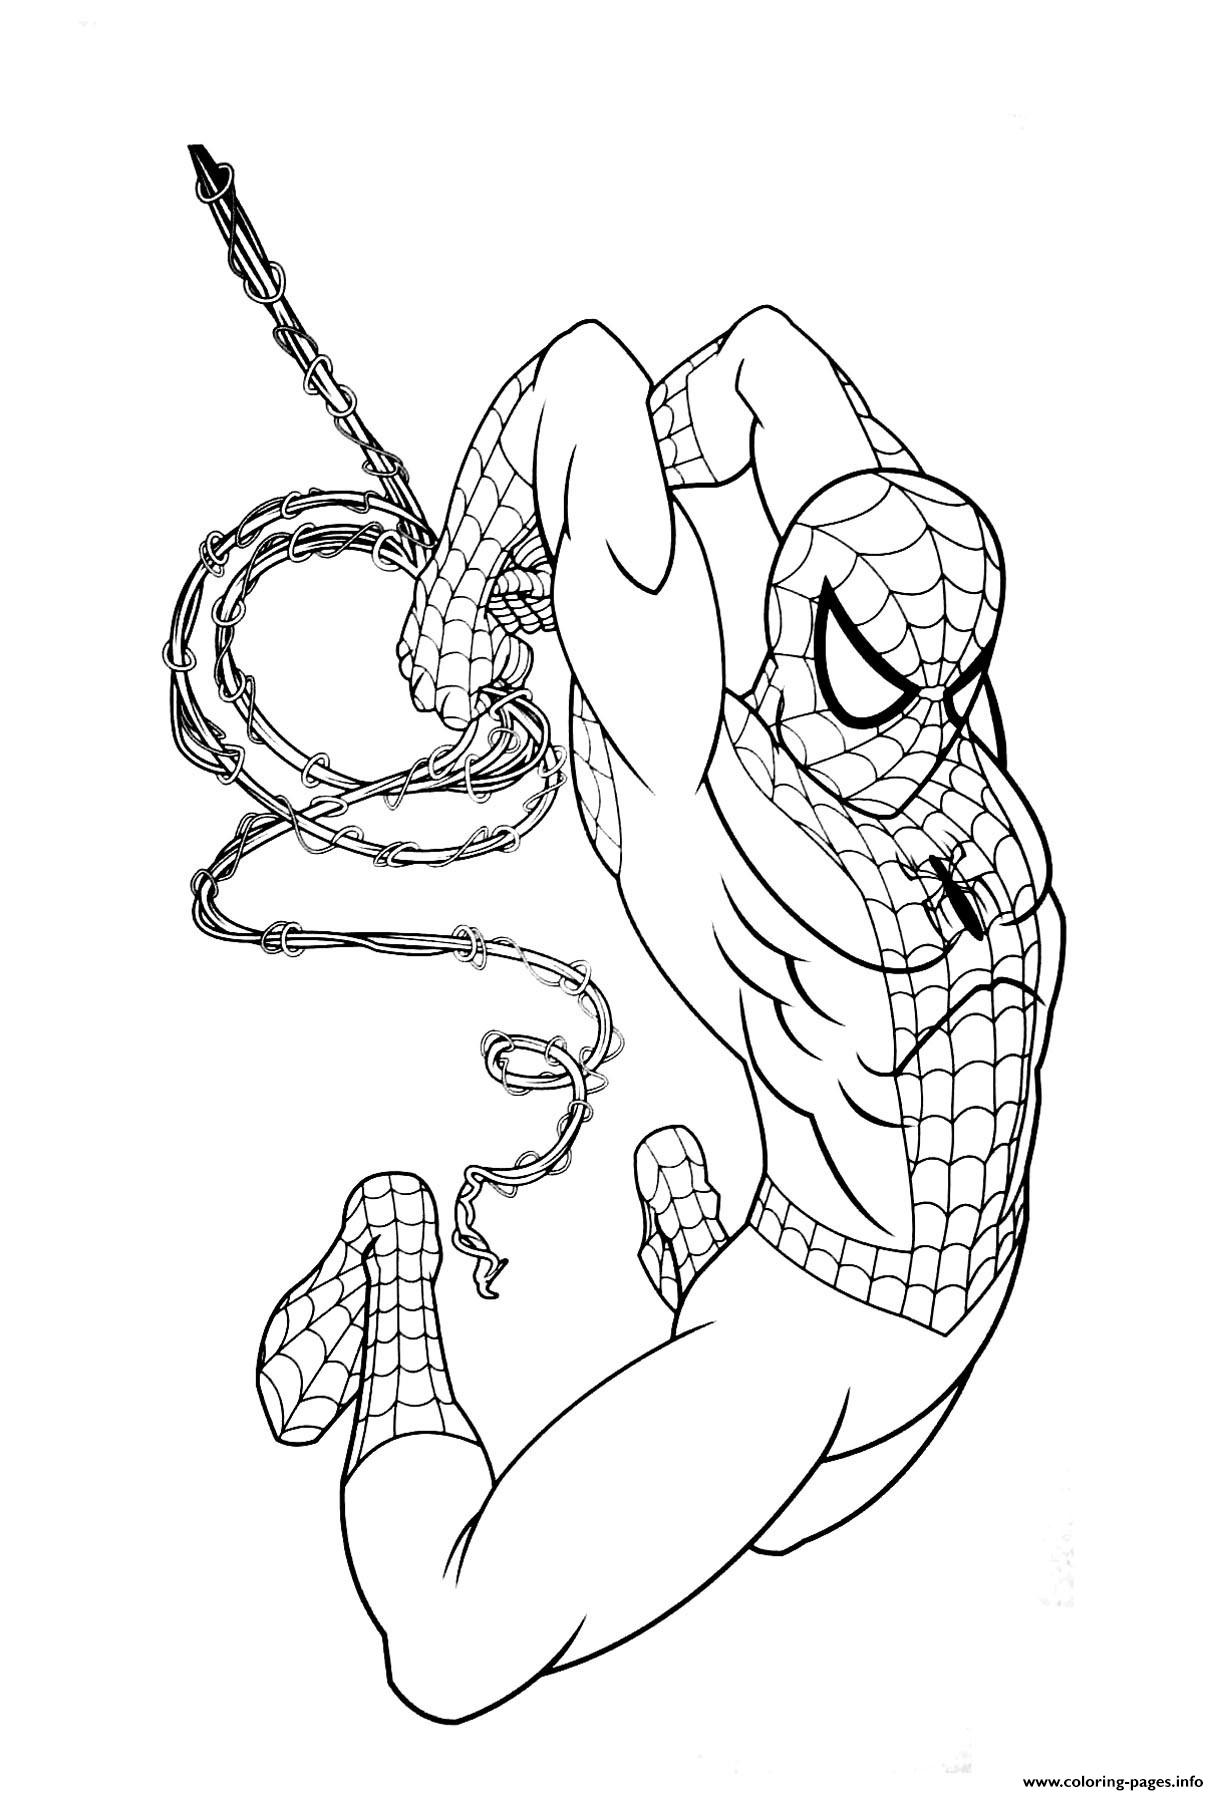 Avengers Endgame Spiderman Coloring Pages Printable